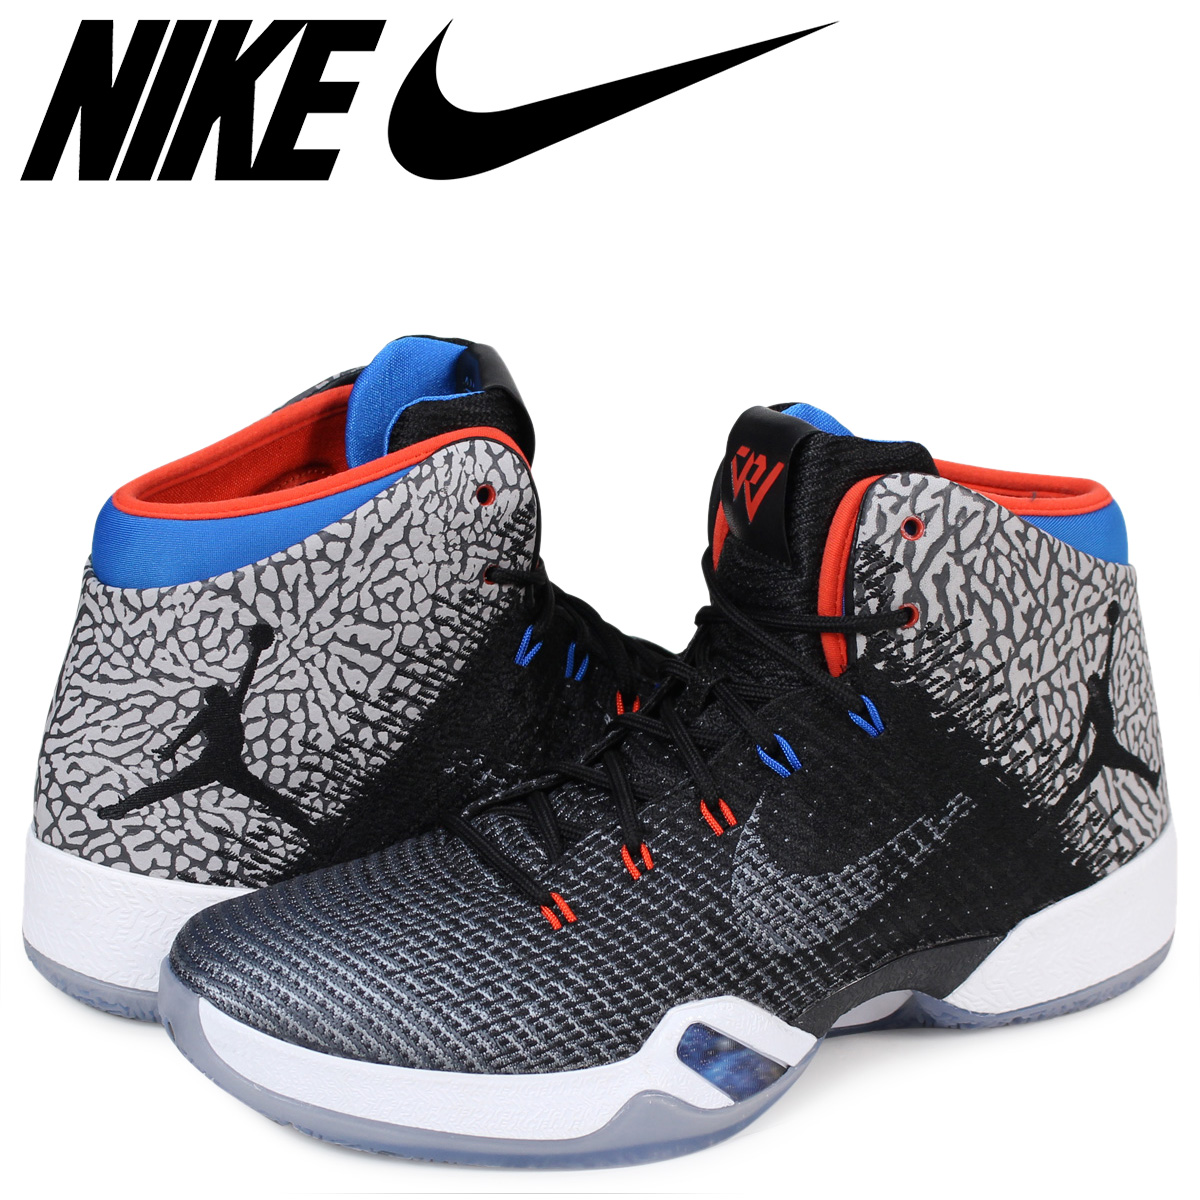 a42c7f1923e ALLSPORTS  NIKE AIR JORDAN XXI WHY NOT Nike Air Jordan 31 sneakers ...